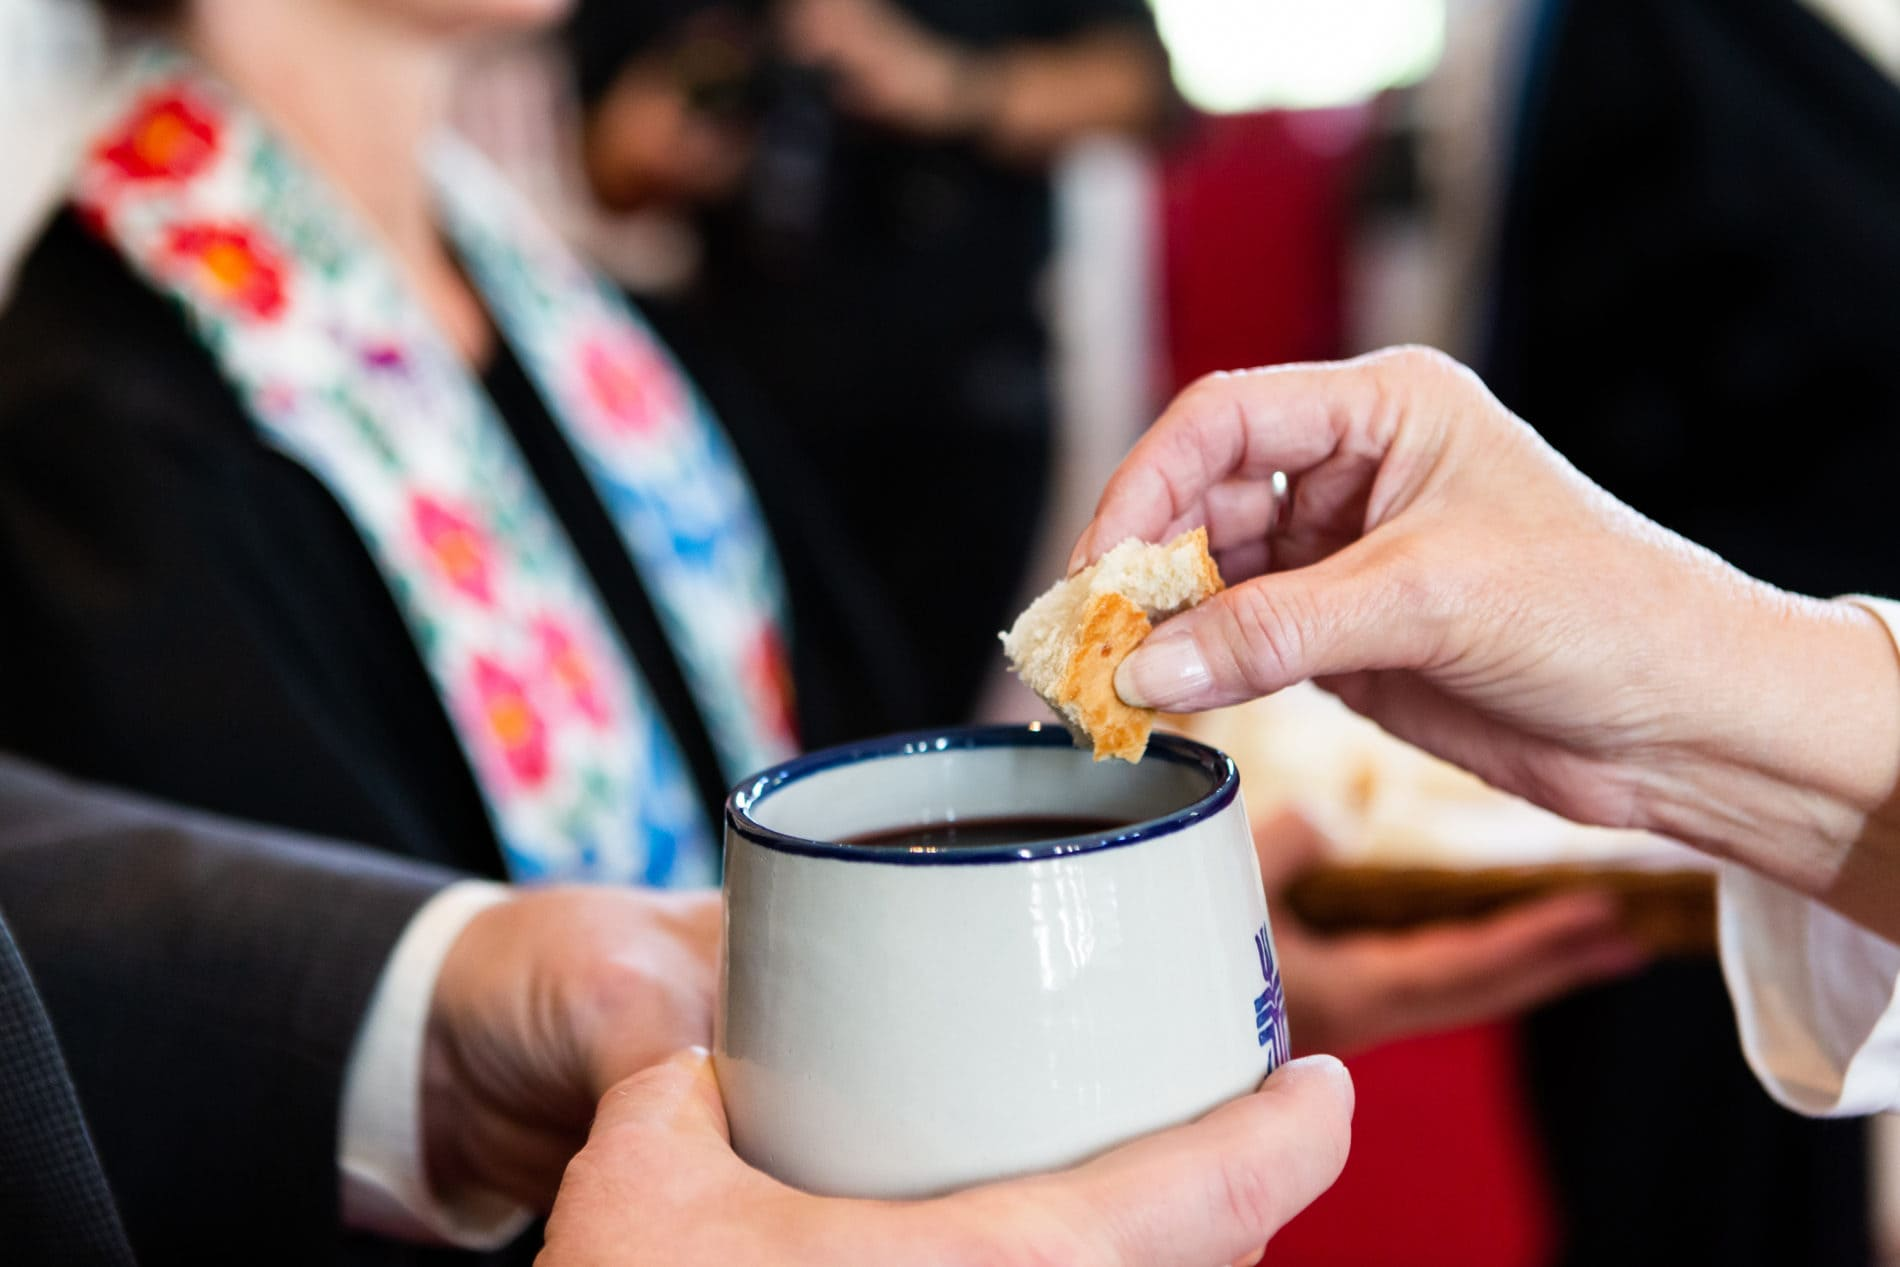 A person dips bread into a chalice during the eucharist